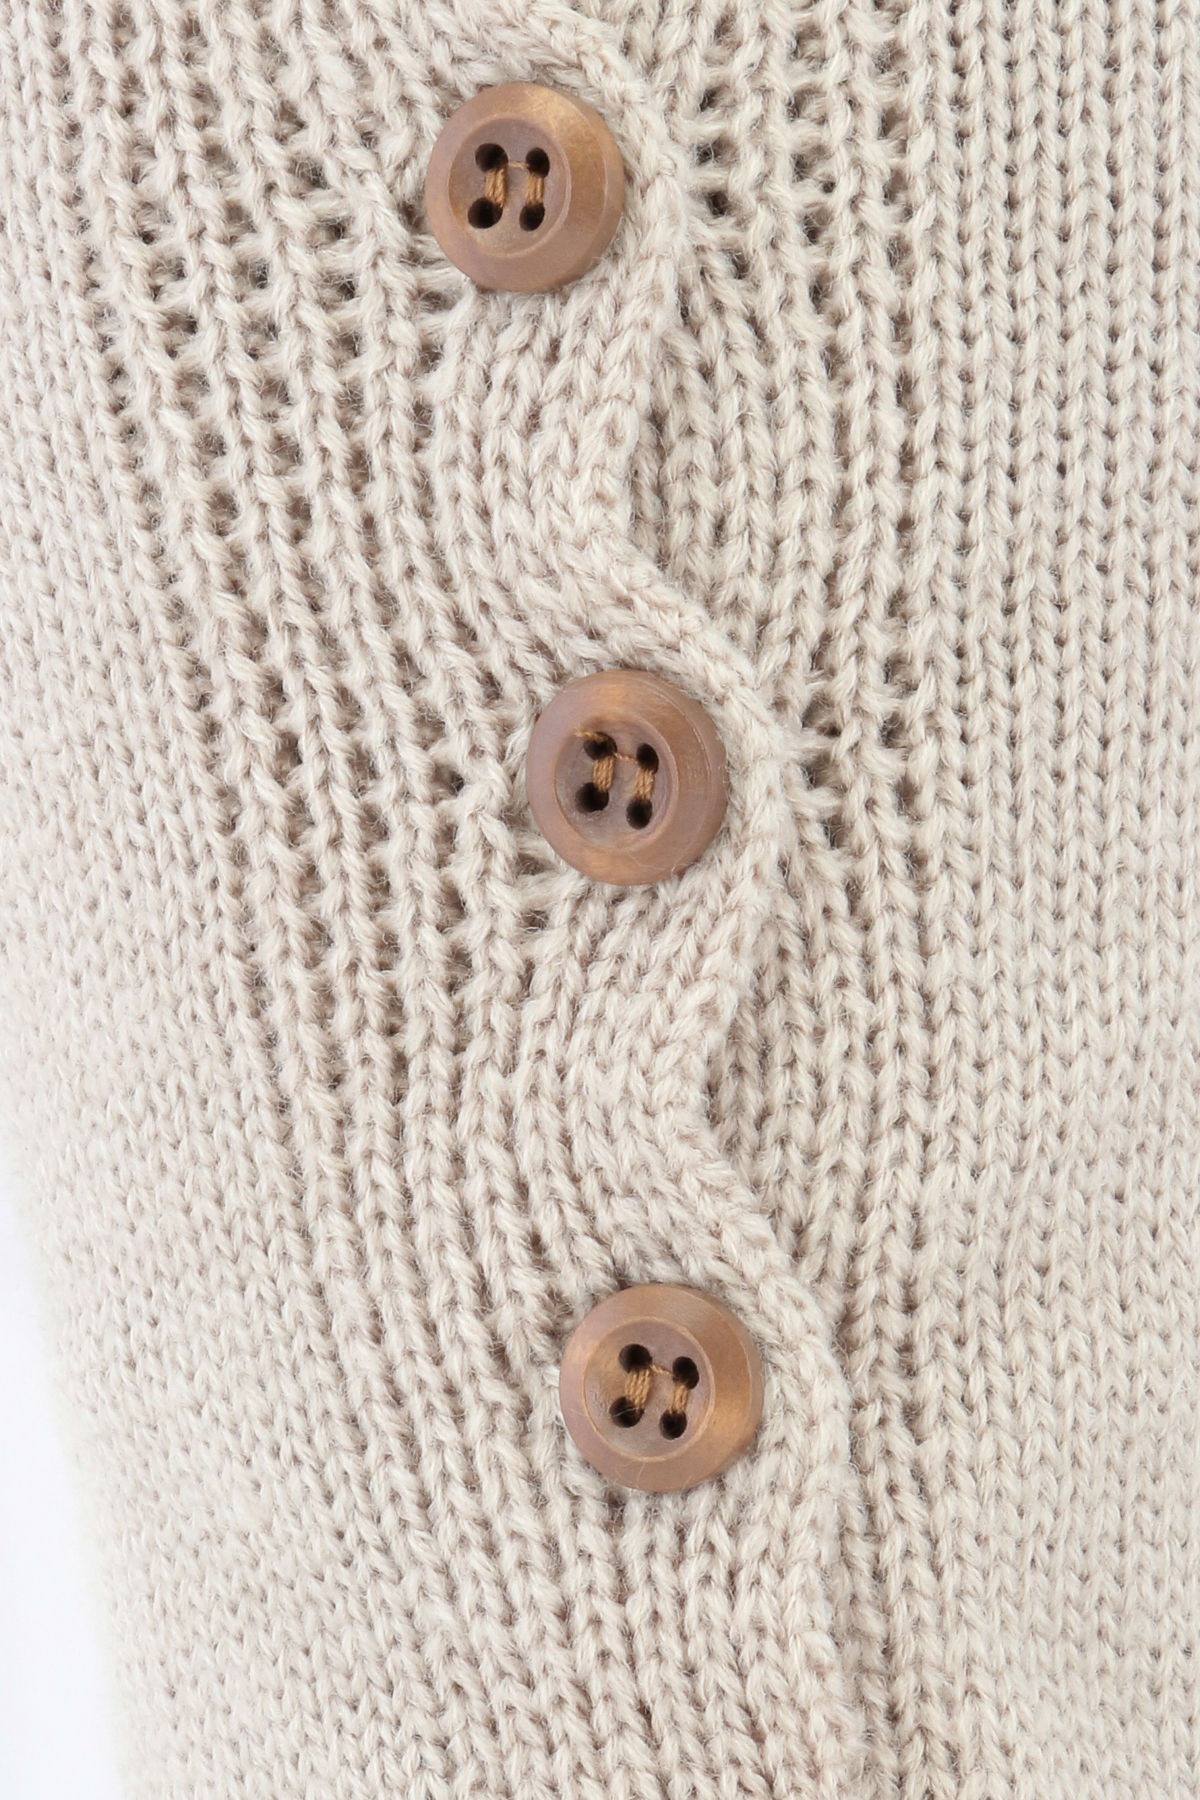 Knitting Pattern For Leg Warmers With Buttons : Knitted Button and Lace Leg Warmers - Gloves & Leg Warmers